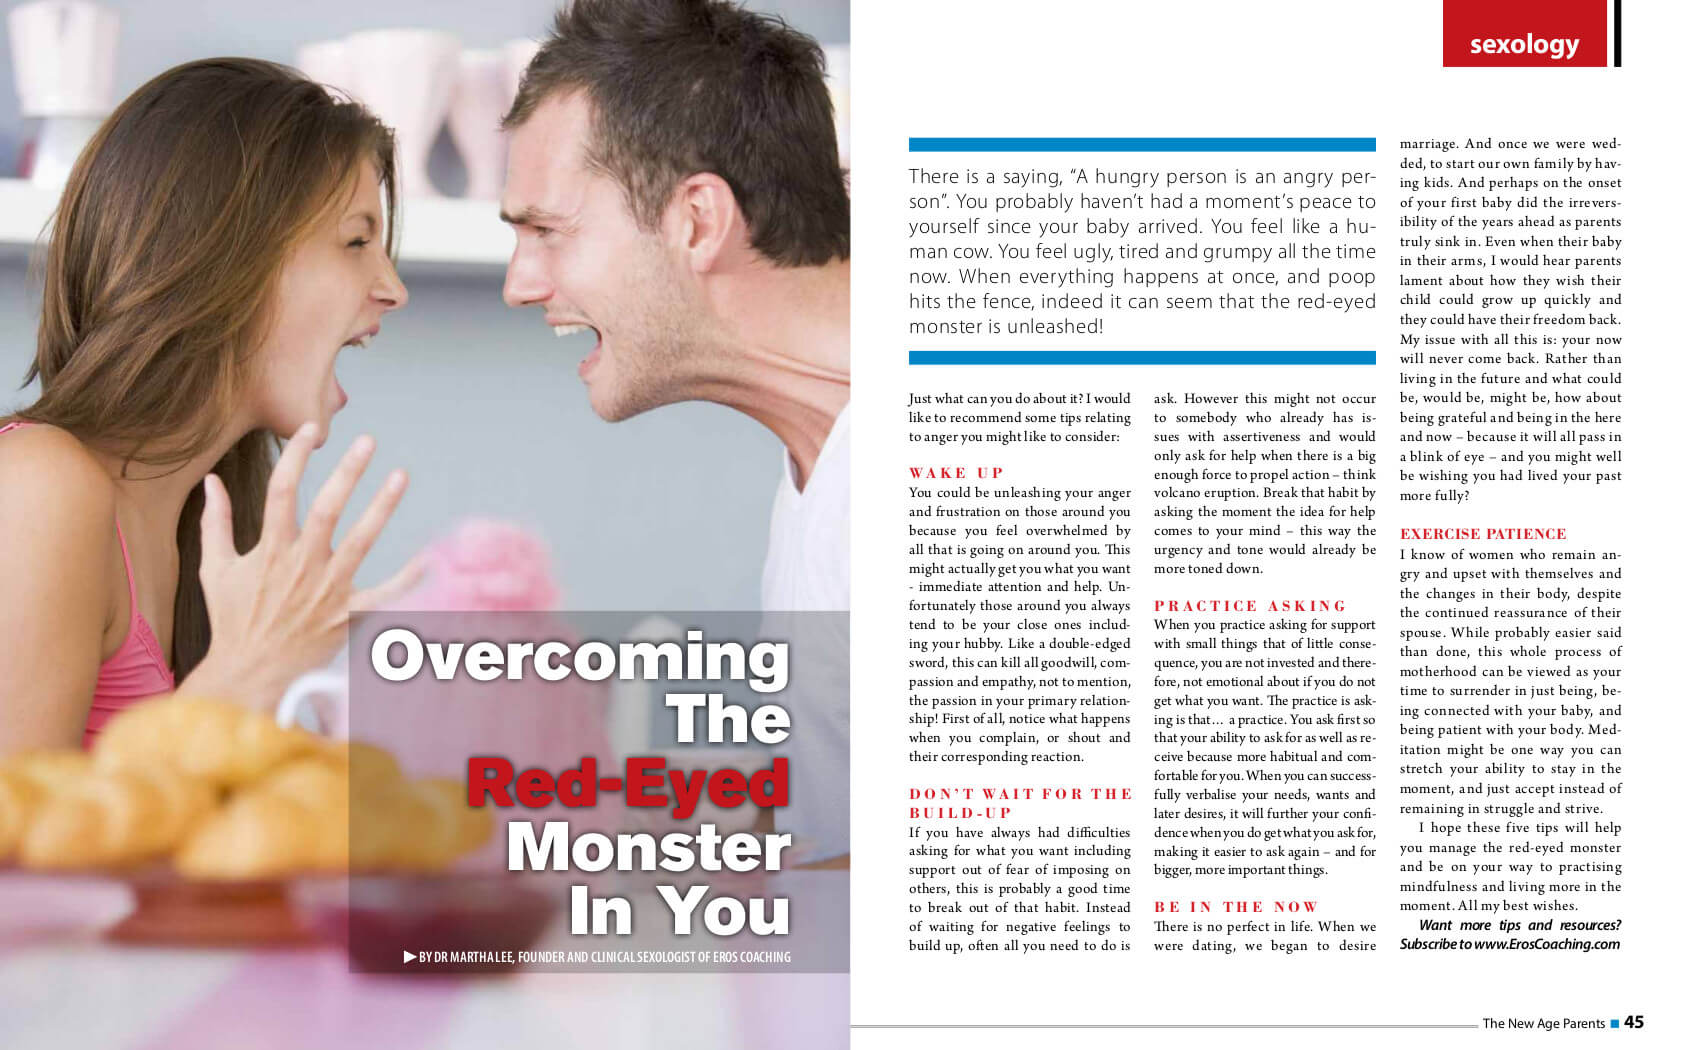 Overcoming the red eyed monster in you Oct Nov 2013